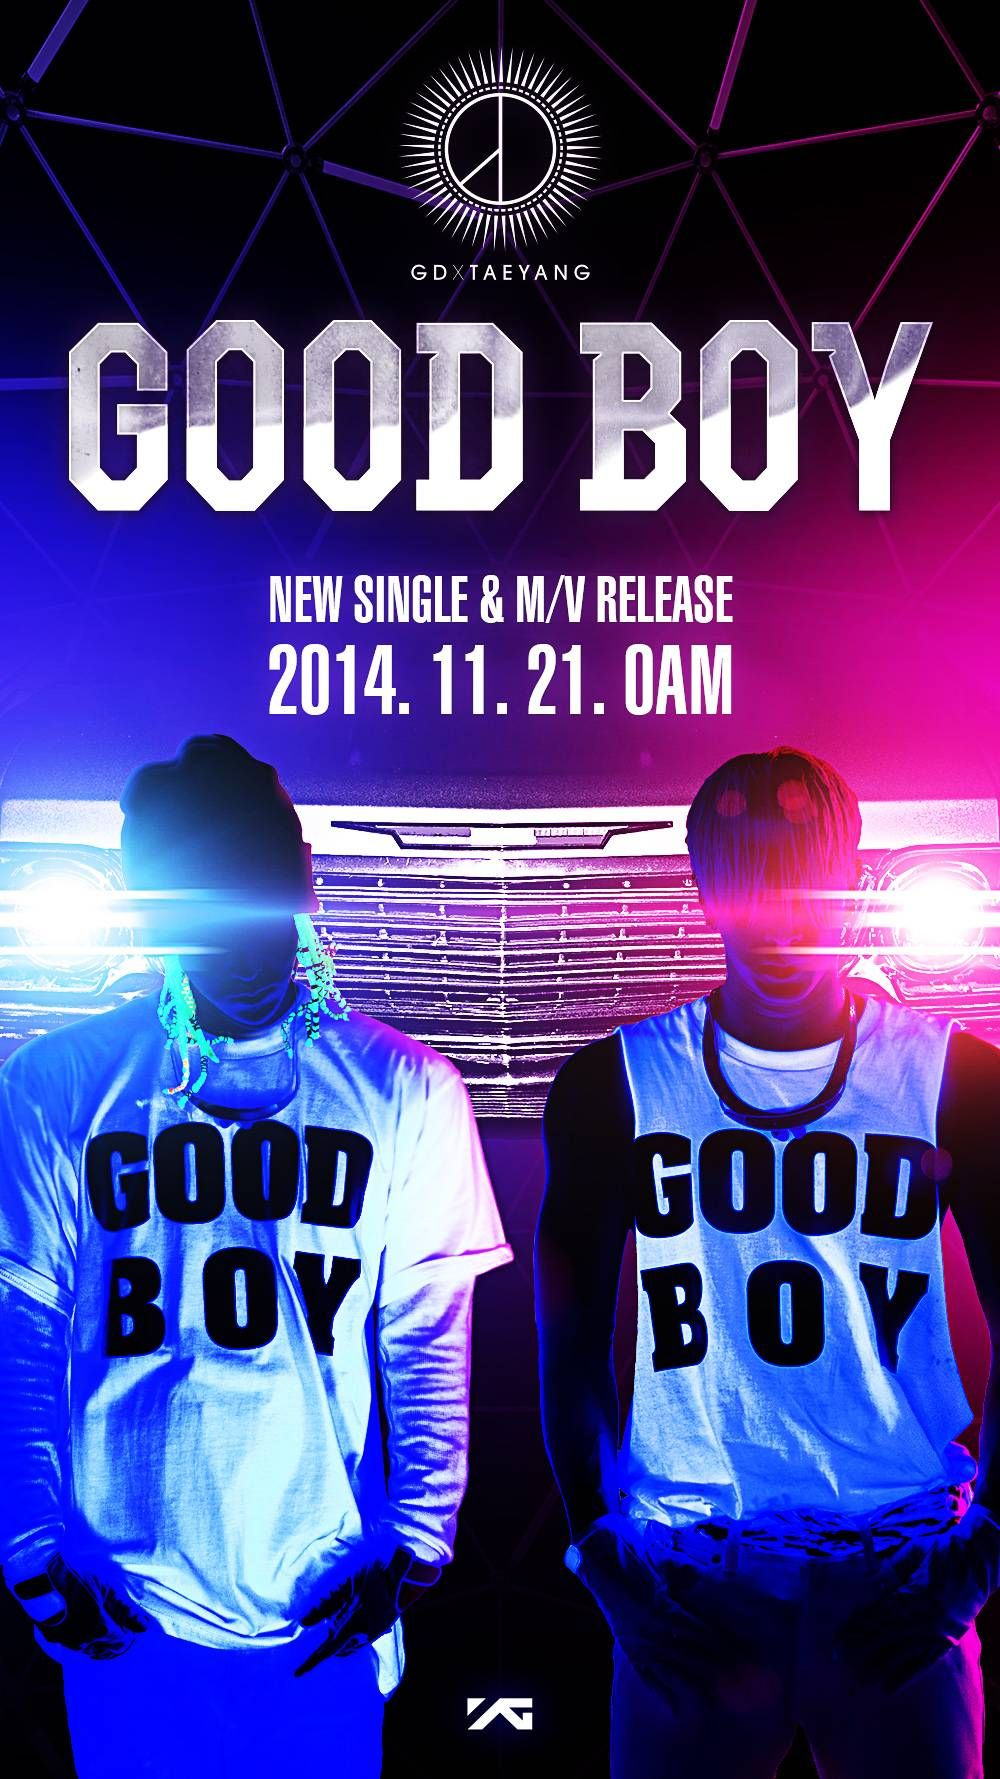 YG Entertainment unveils teaser image for 'Good Boy' by G-Dragon and Taeyang   allkpop